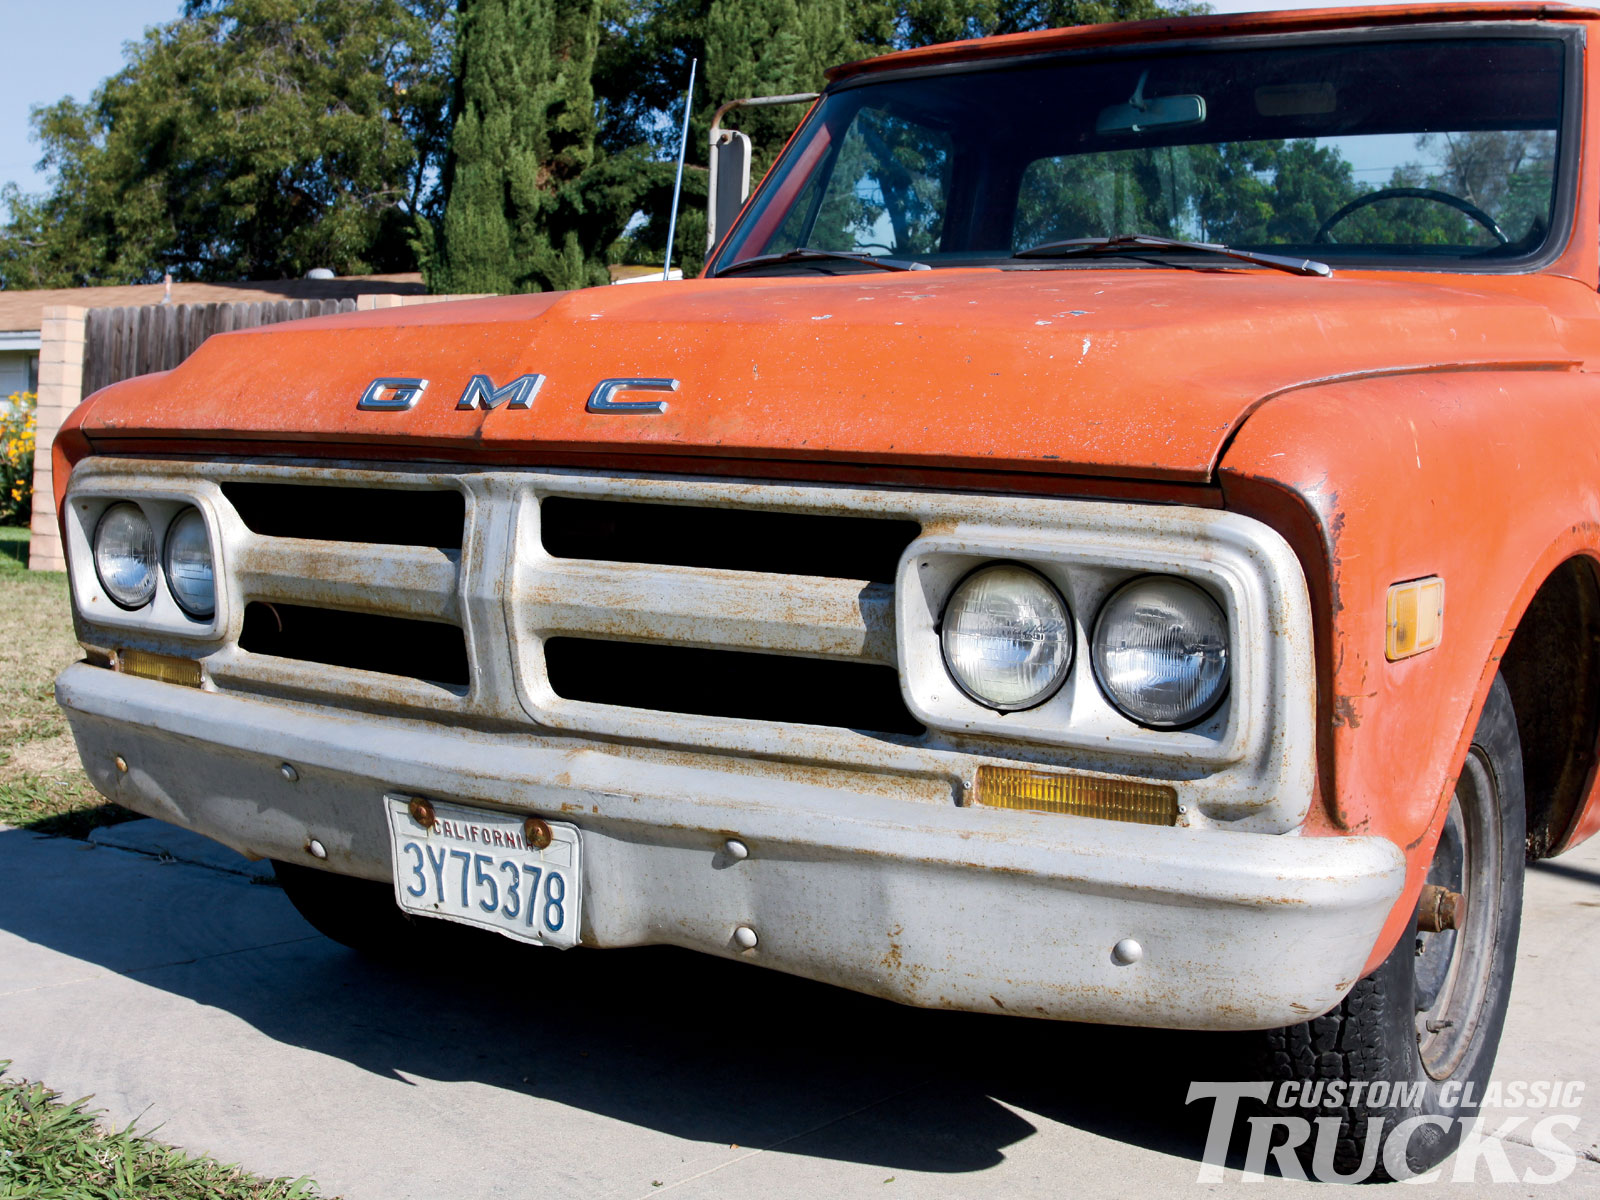 1967 1968 GMC Grille   Bumper Upgrades   Hot Rod Network 1102cct 03 O 1967 1968 Gmc Grille Bumper Upgrade Old Grille